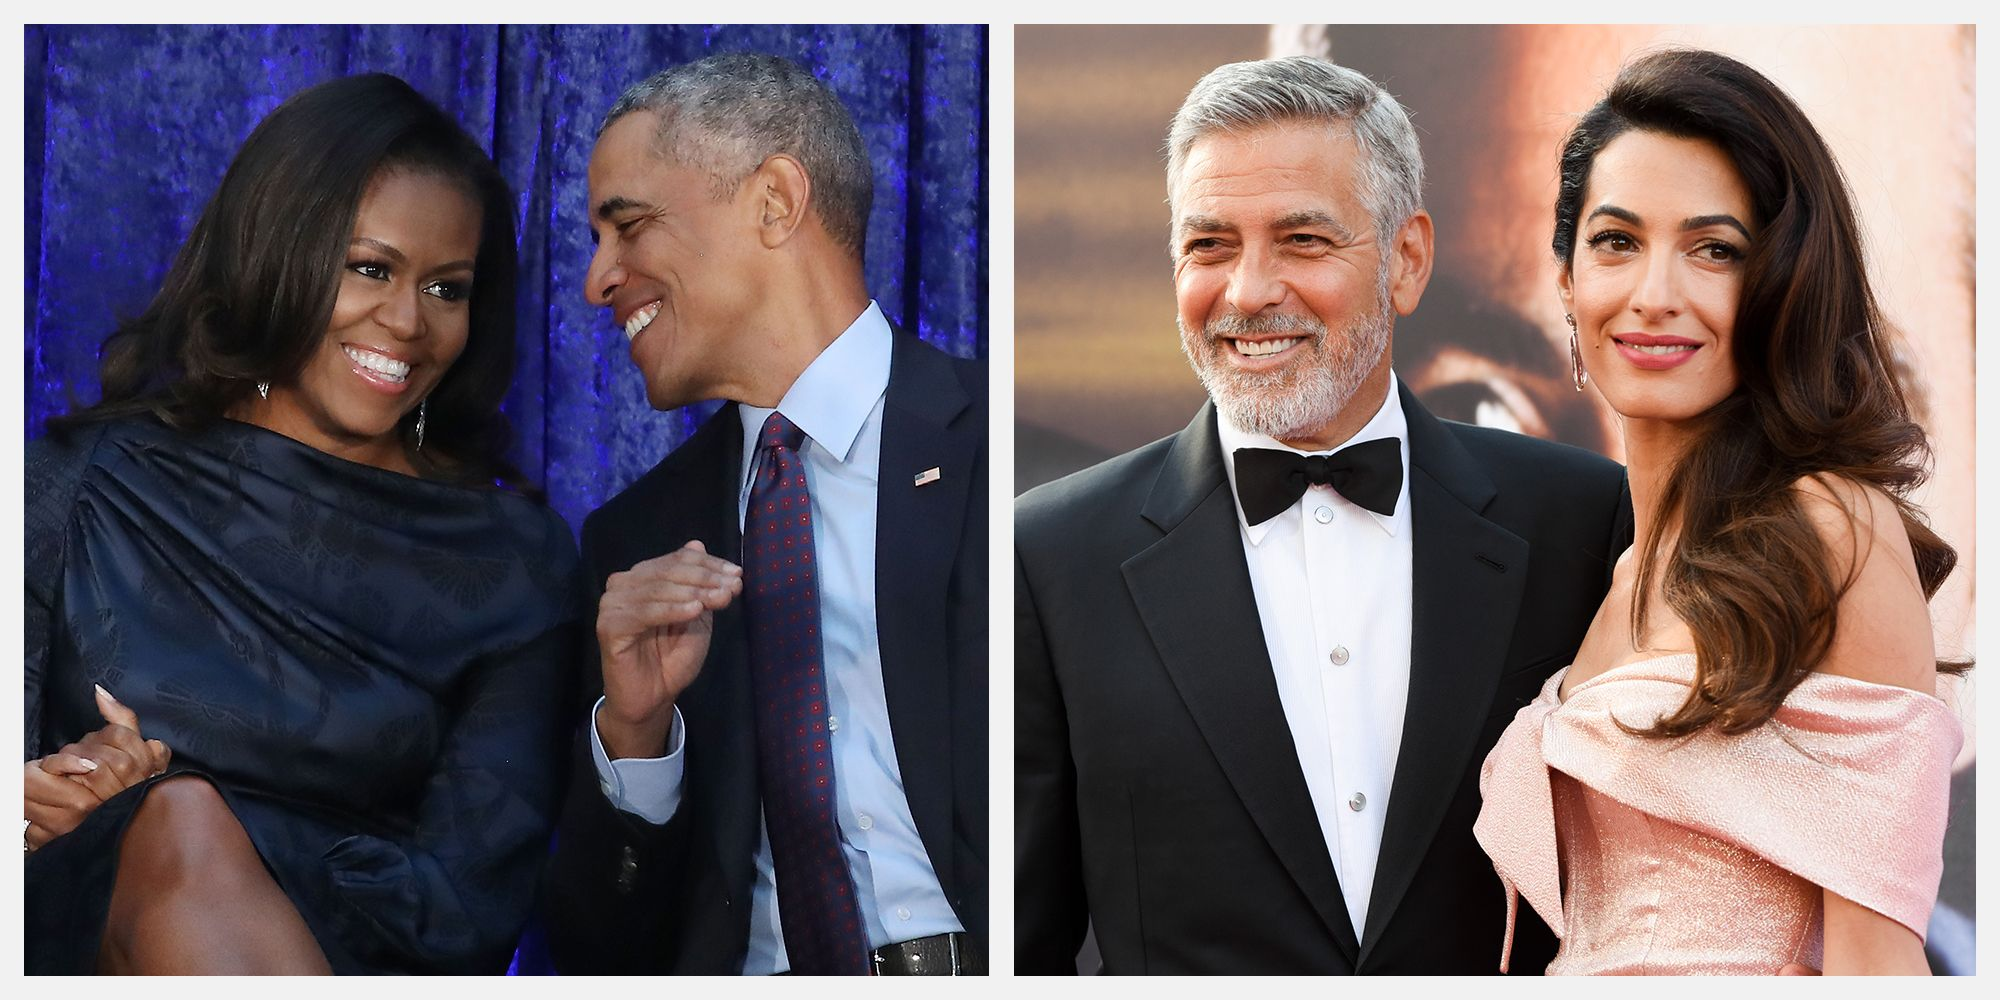 George Clooney as the US President support by Barack Obama